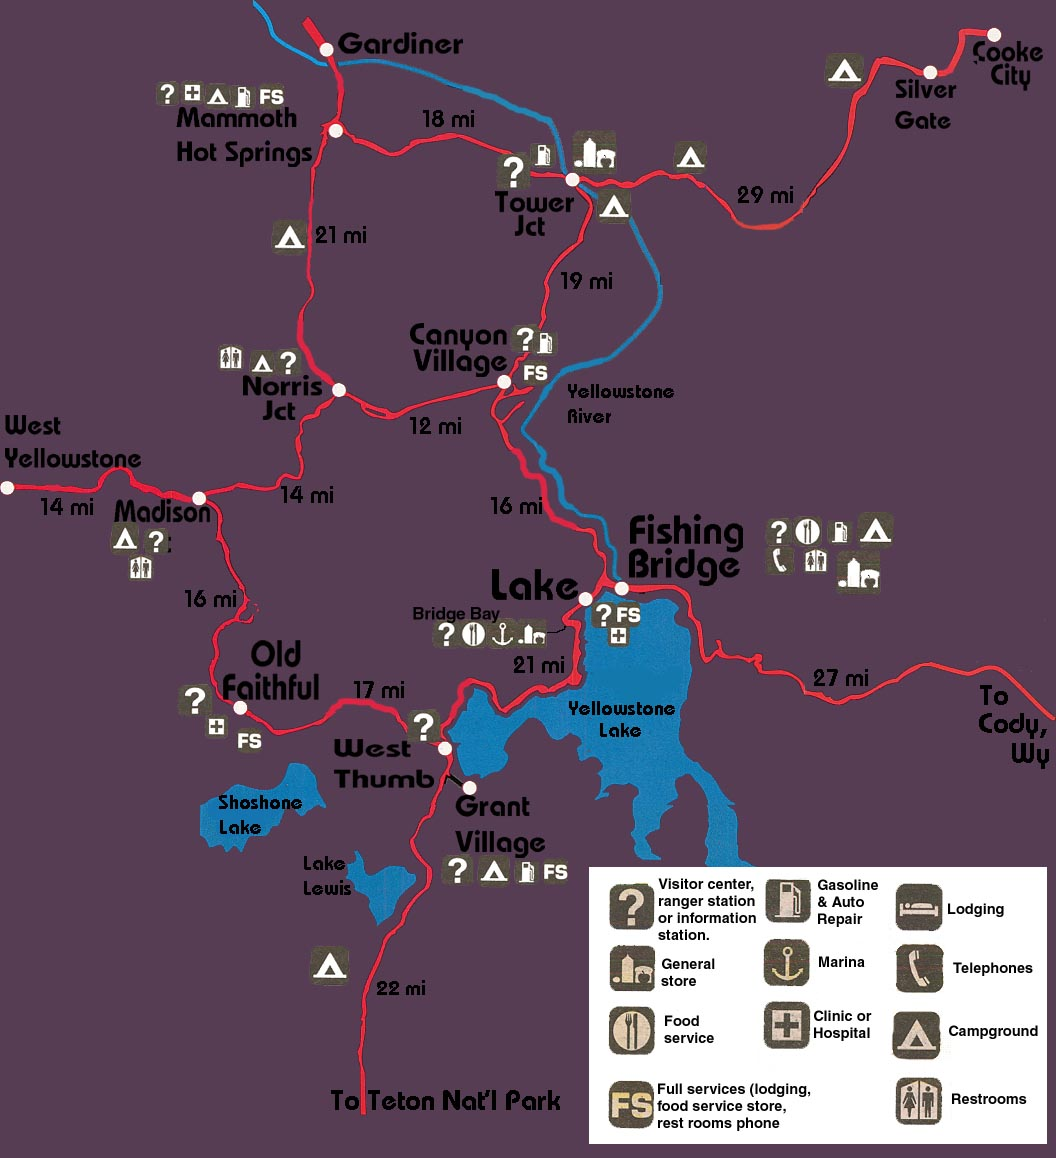 Yellowstone facilities map for Fishing bridge campground